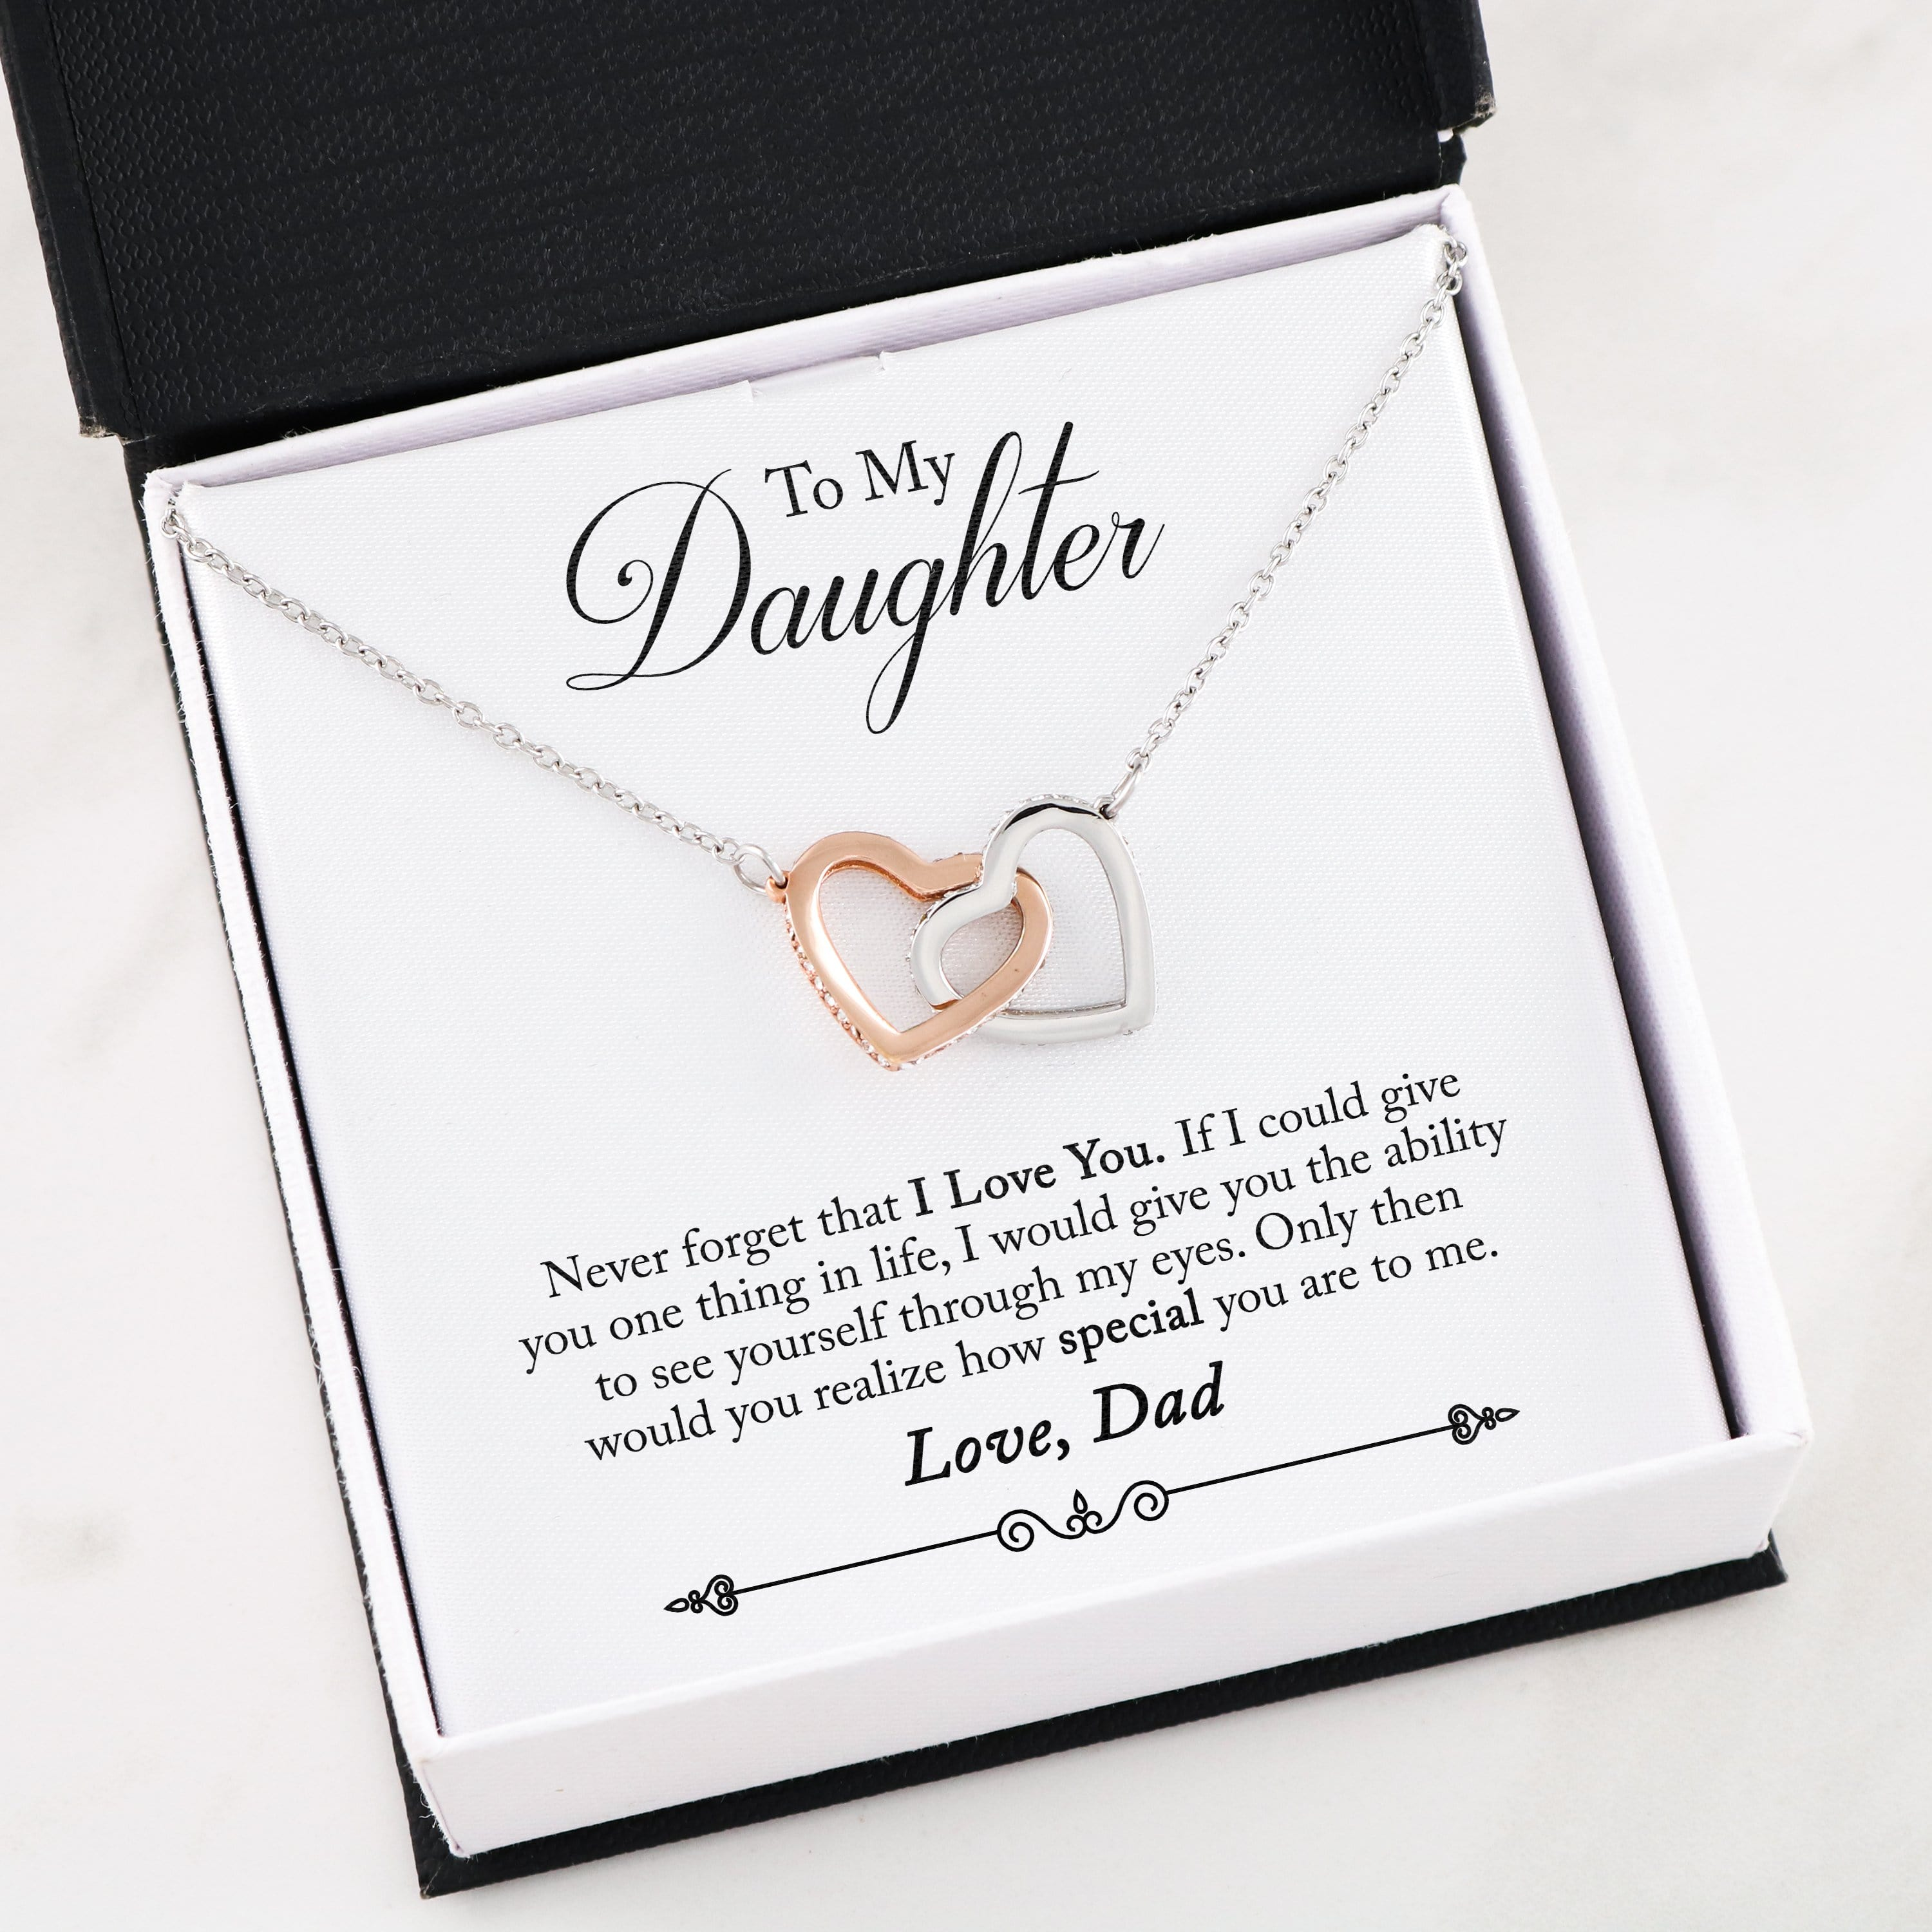 To My Daughter, Never Forget That I Love You - Interlocking Heart Necklace